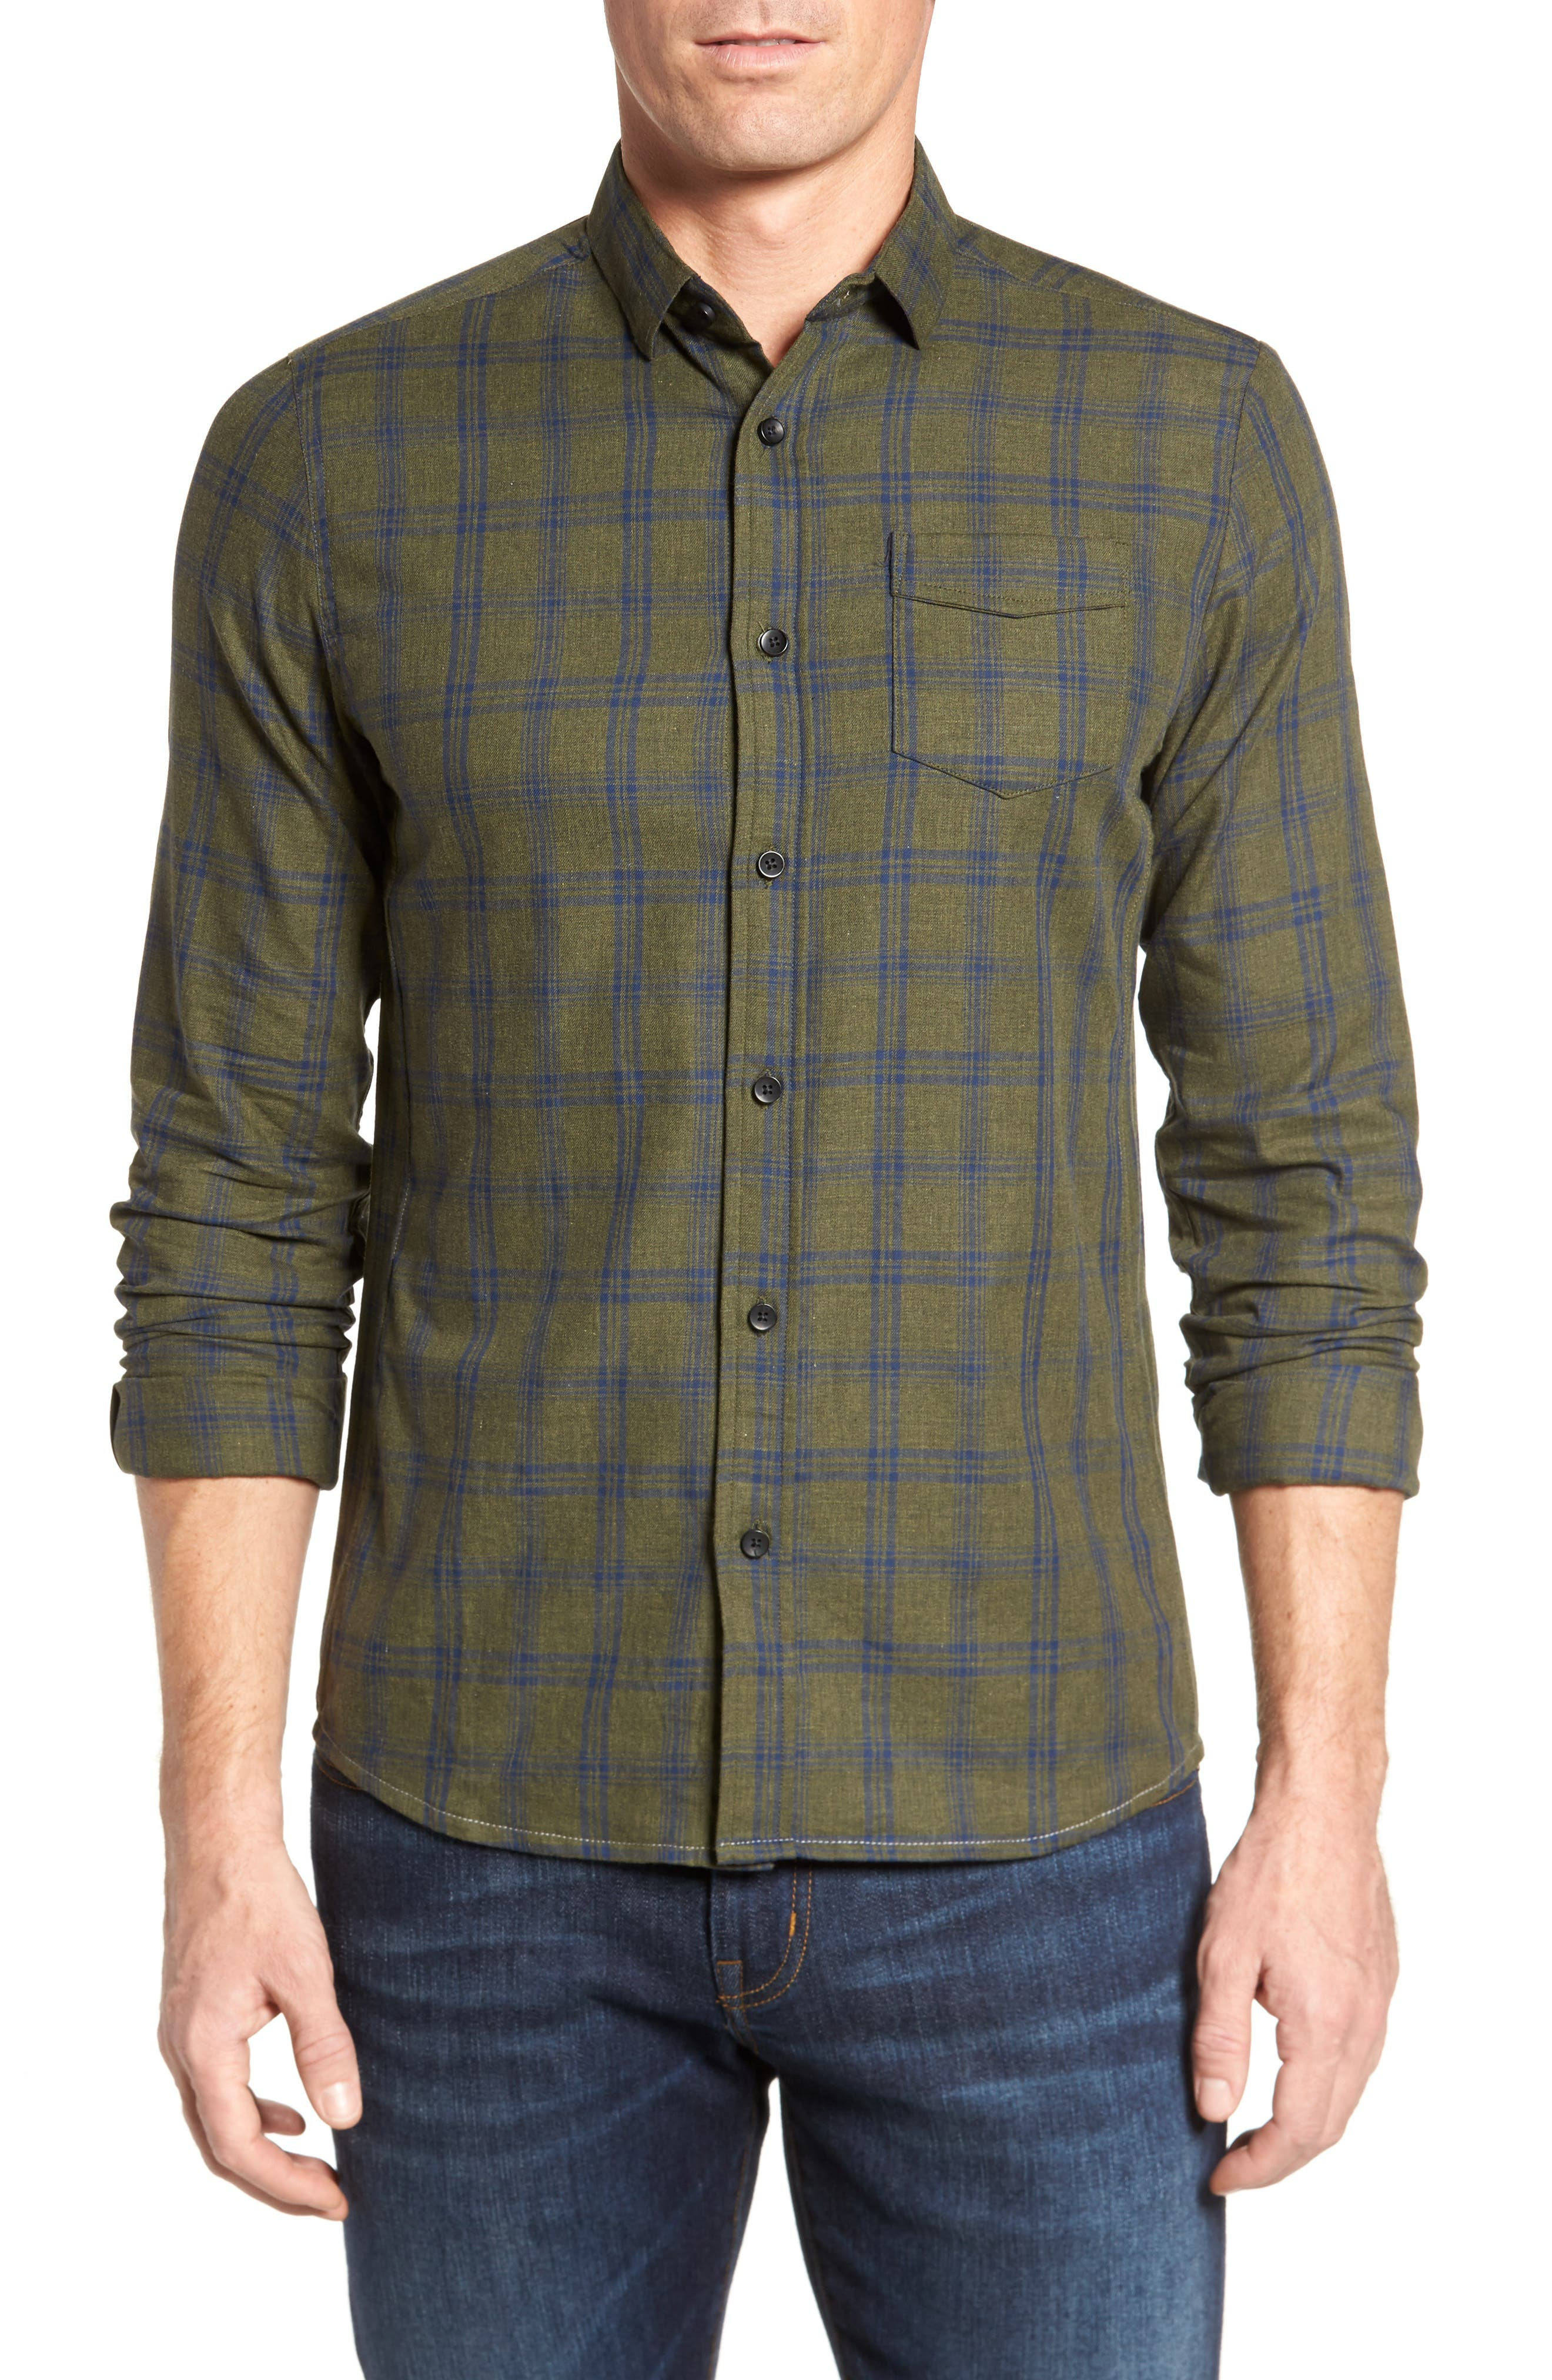 Alternate Image 1 Selected - Descendant of Thieves Vintage Army Plaid Sport Shirt